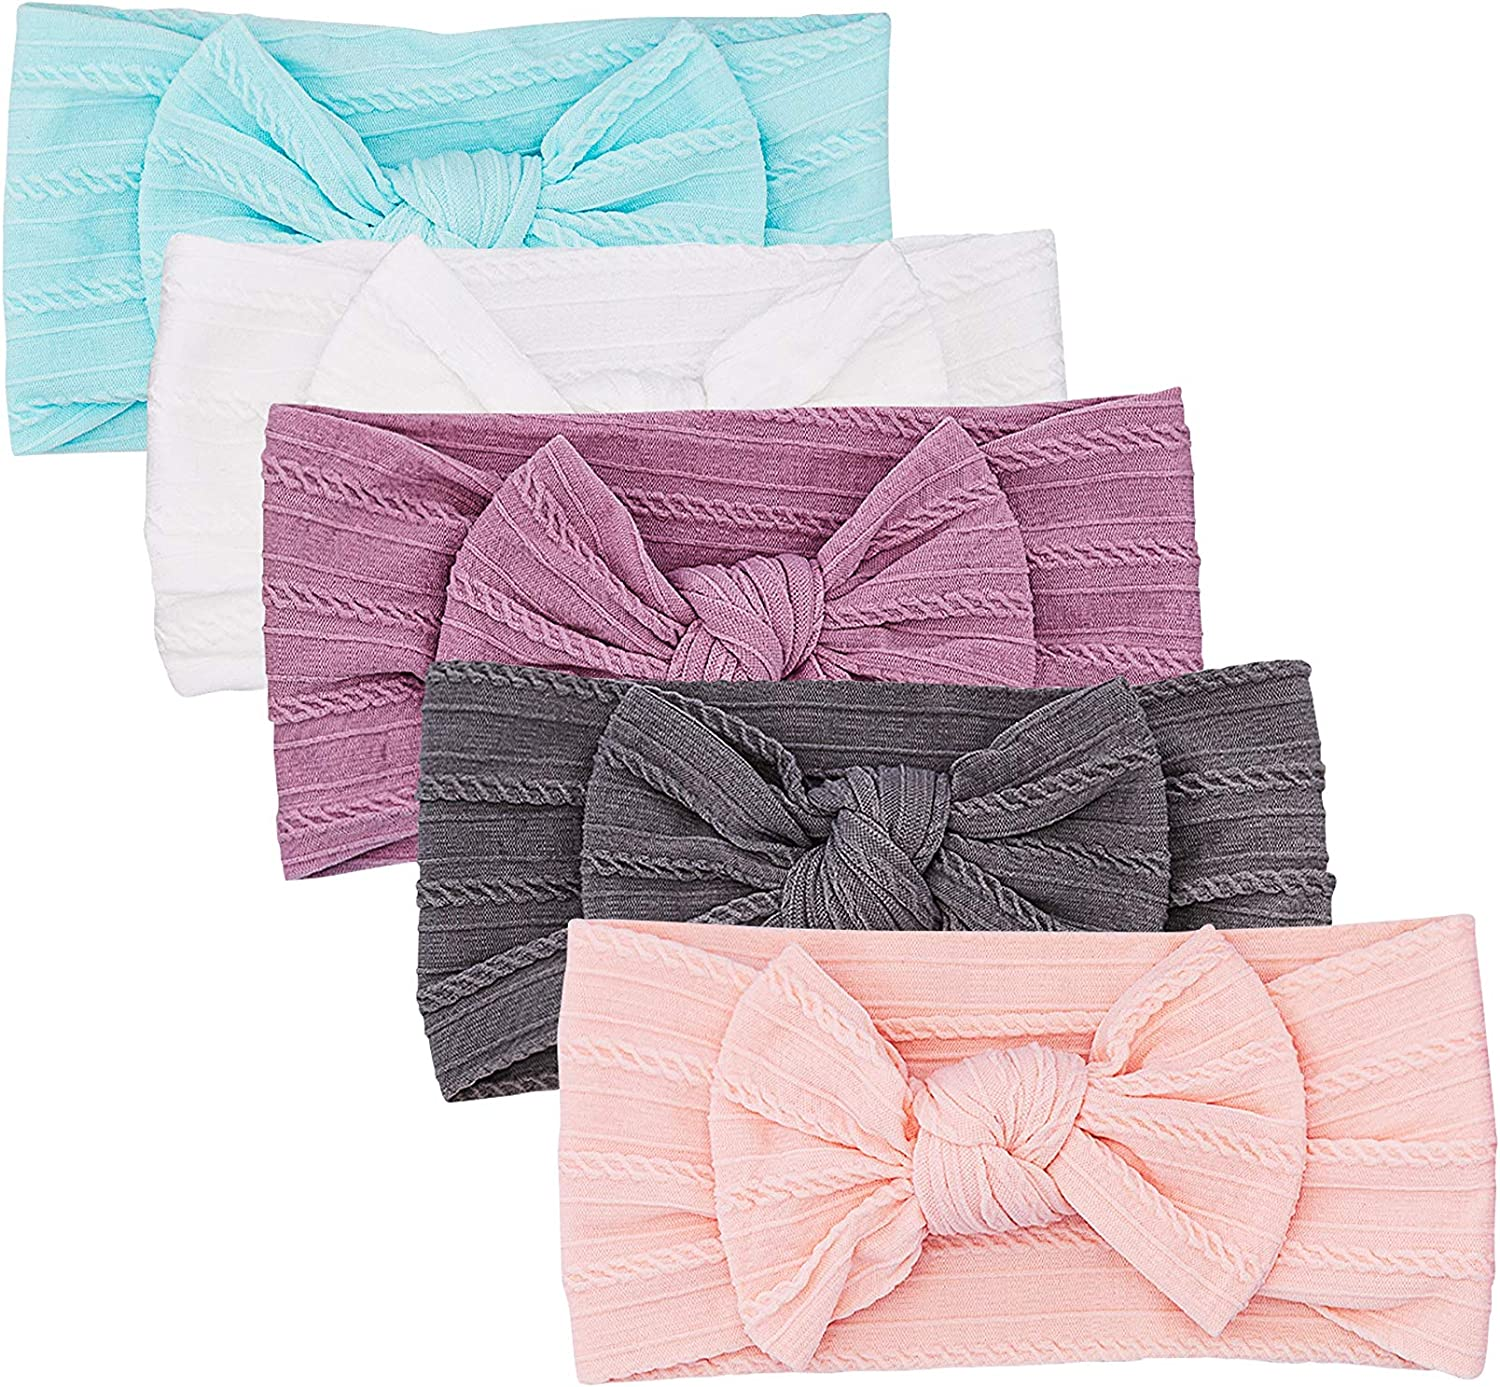 Parker Wholesale Baby Girl Headbands - 5 Pack San Diego Mall Nylon for of Bows Cable Knit